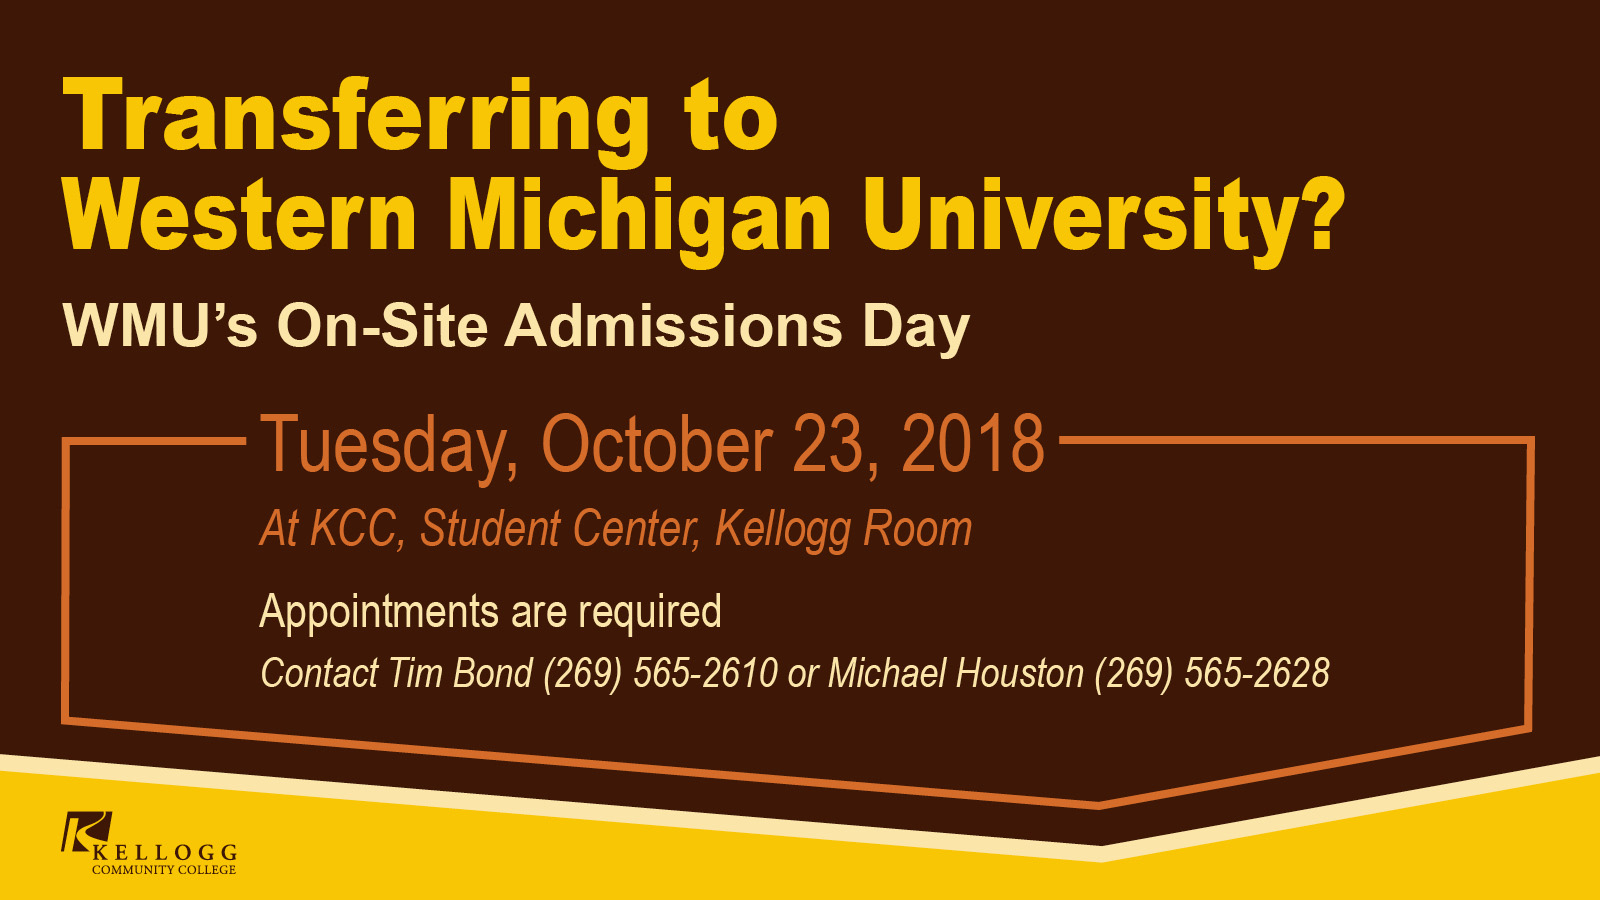 A text slide promoting KCC's WMU On-Site Admission Day, scheduled for Oct. 23, 2018.